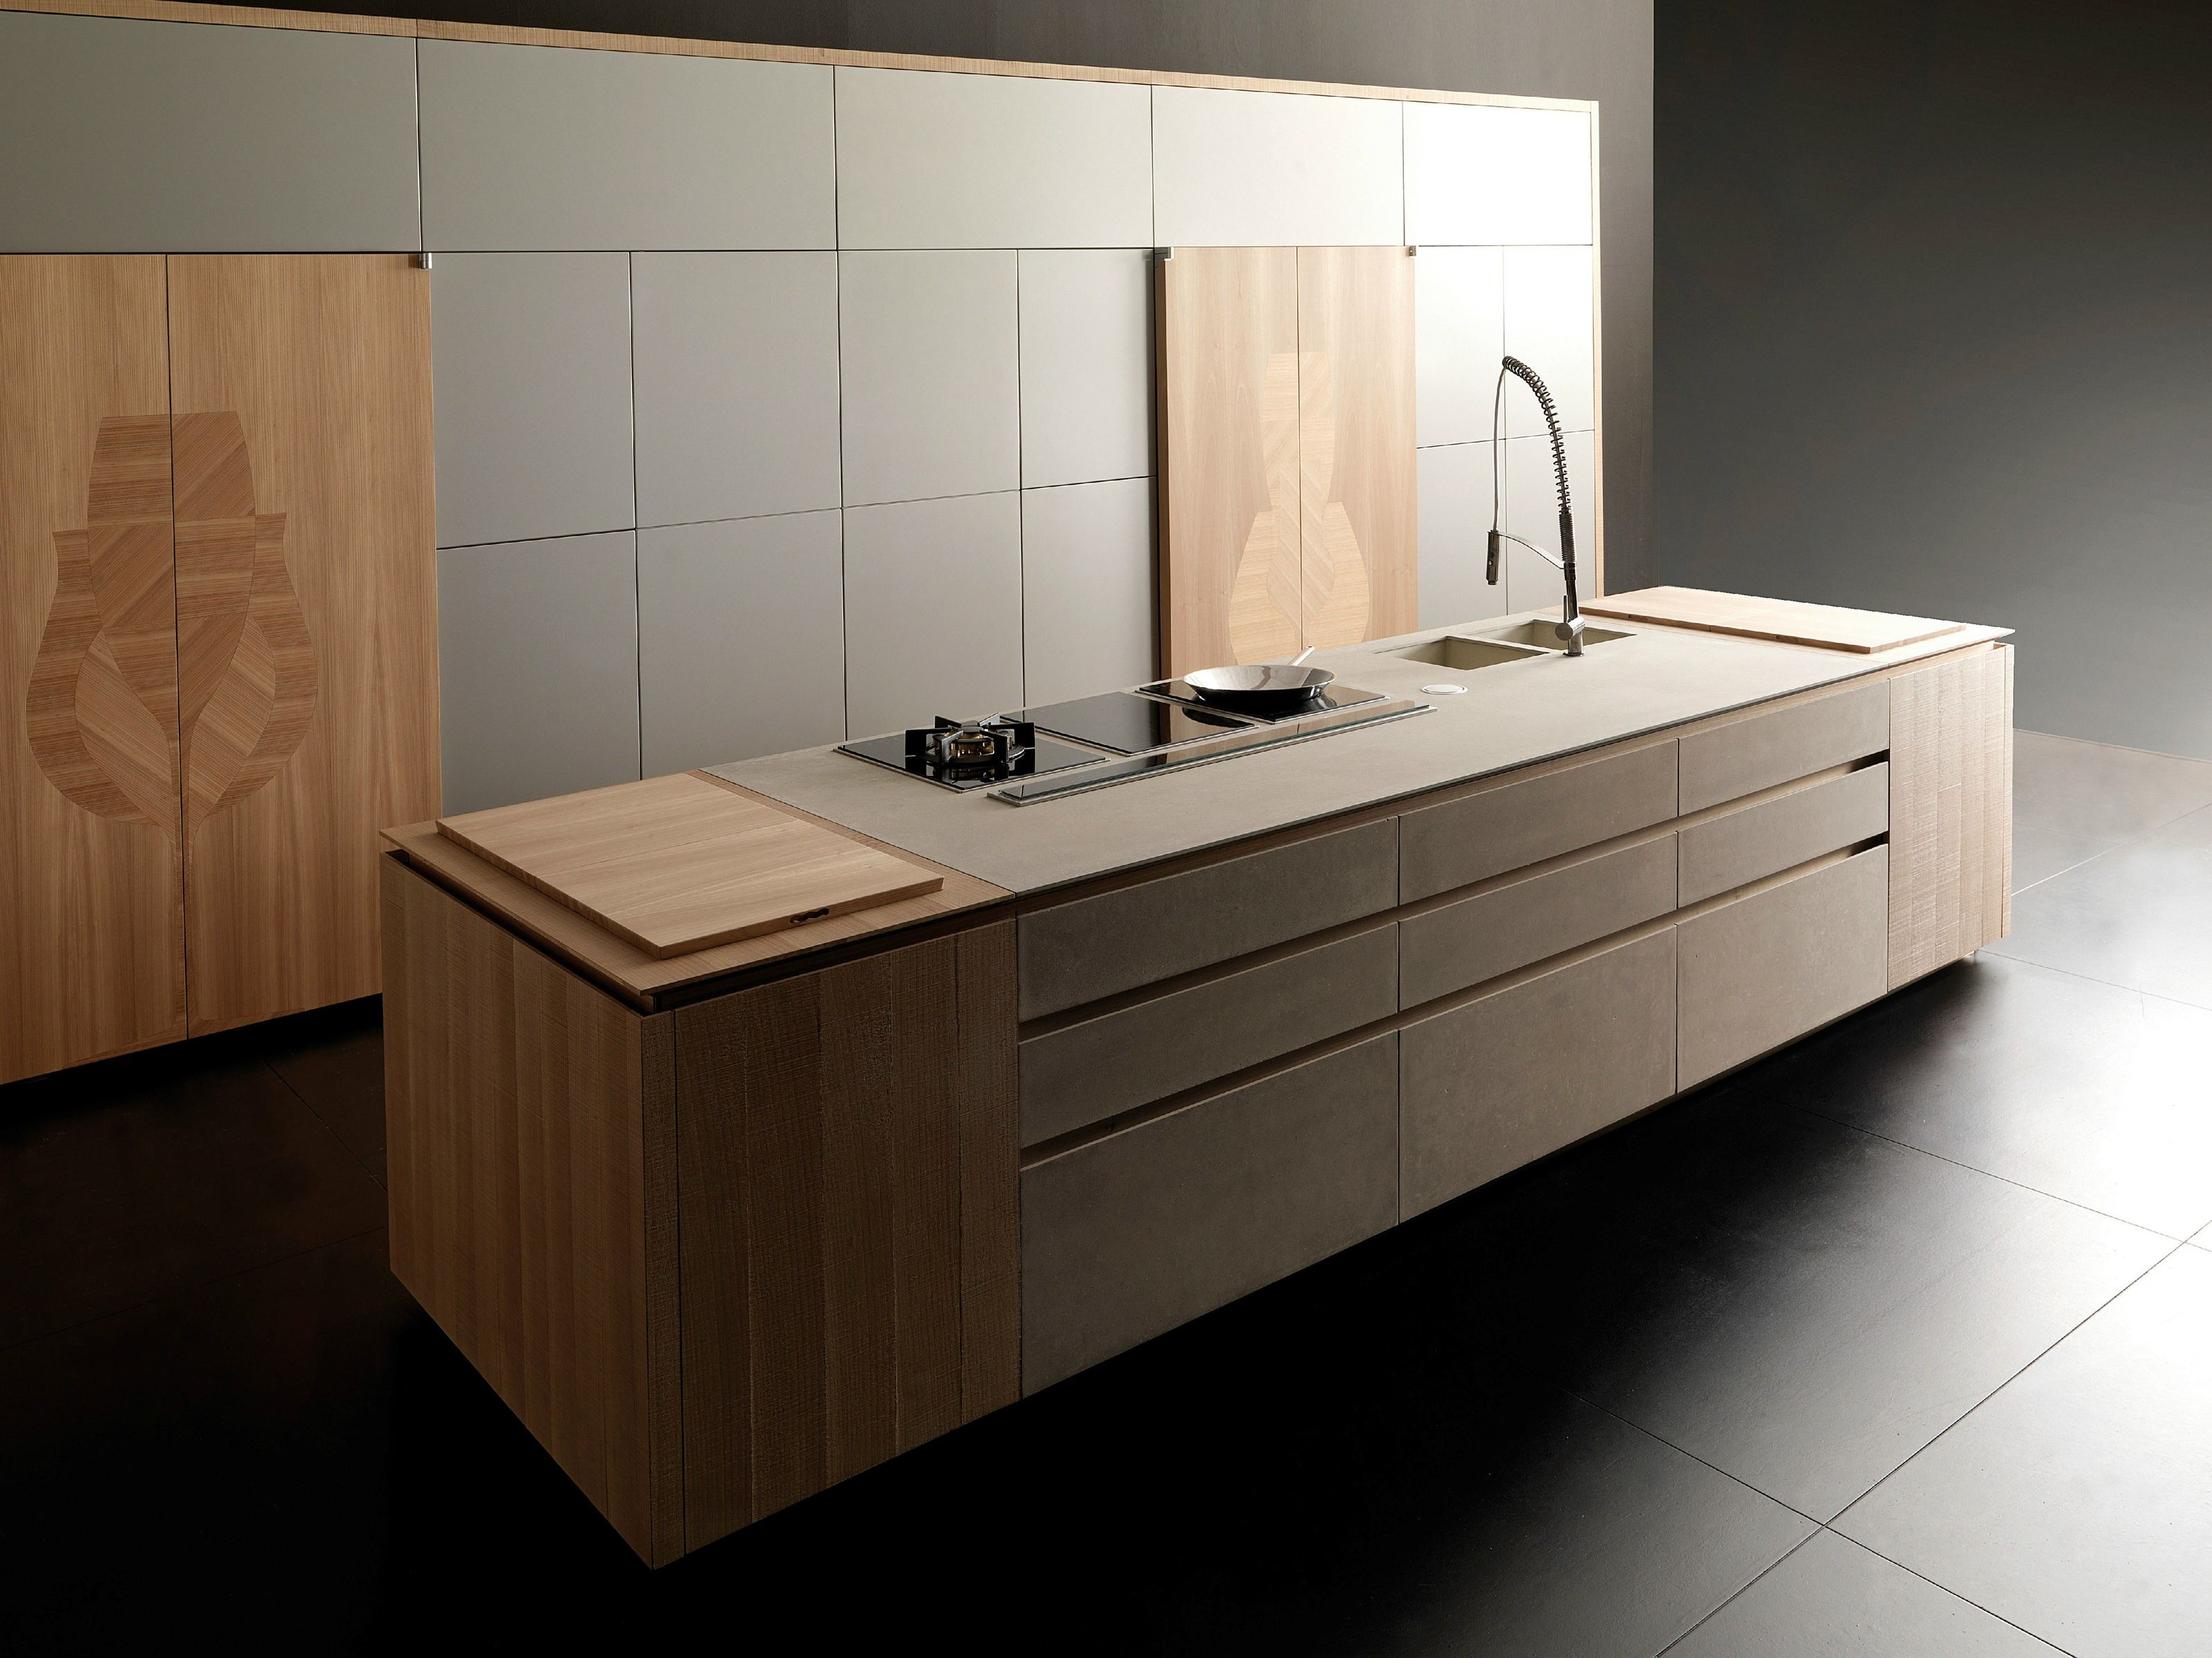 k che aus zement mit k cheninsel wind eta beige by toncelli cucine. Black Bedroom Furniture Sets. Home Design Ideas